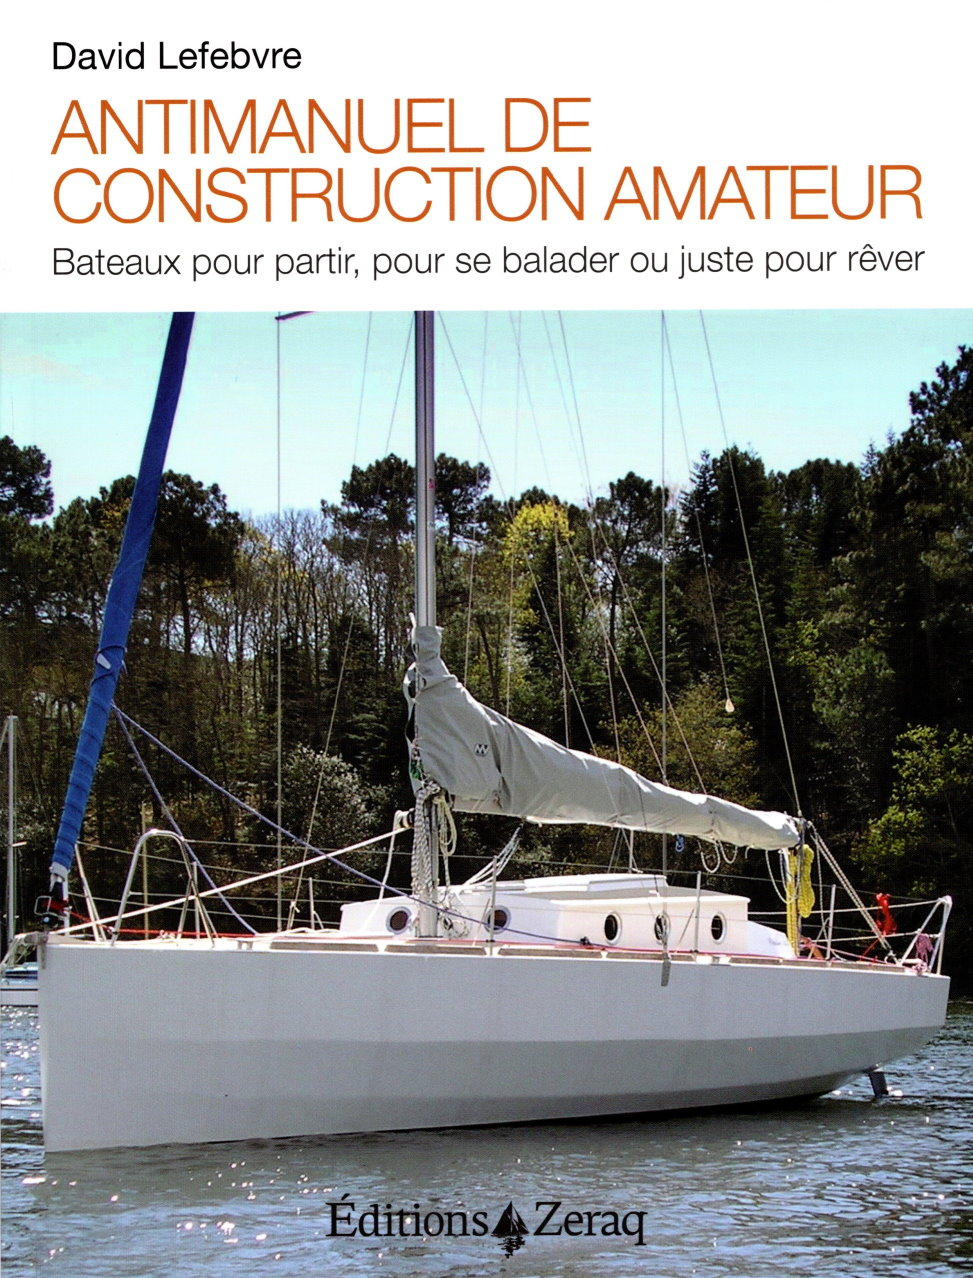 Antimanuel de construction amateur